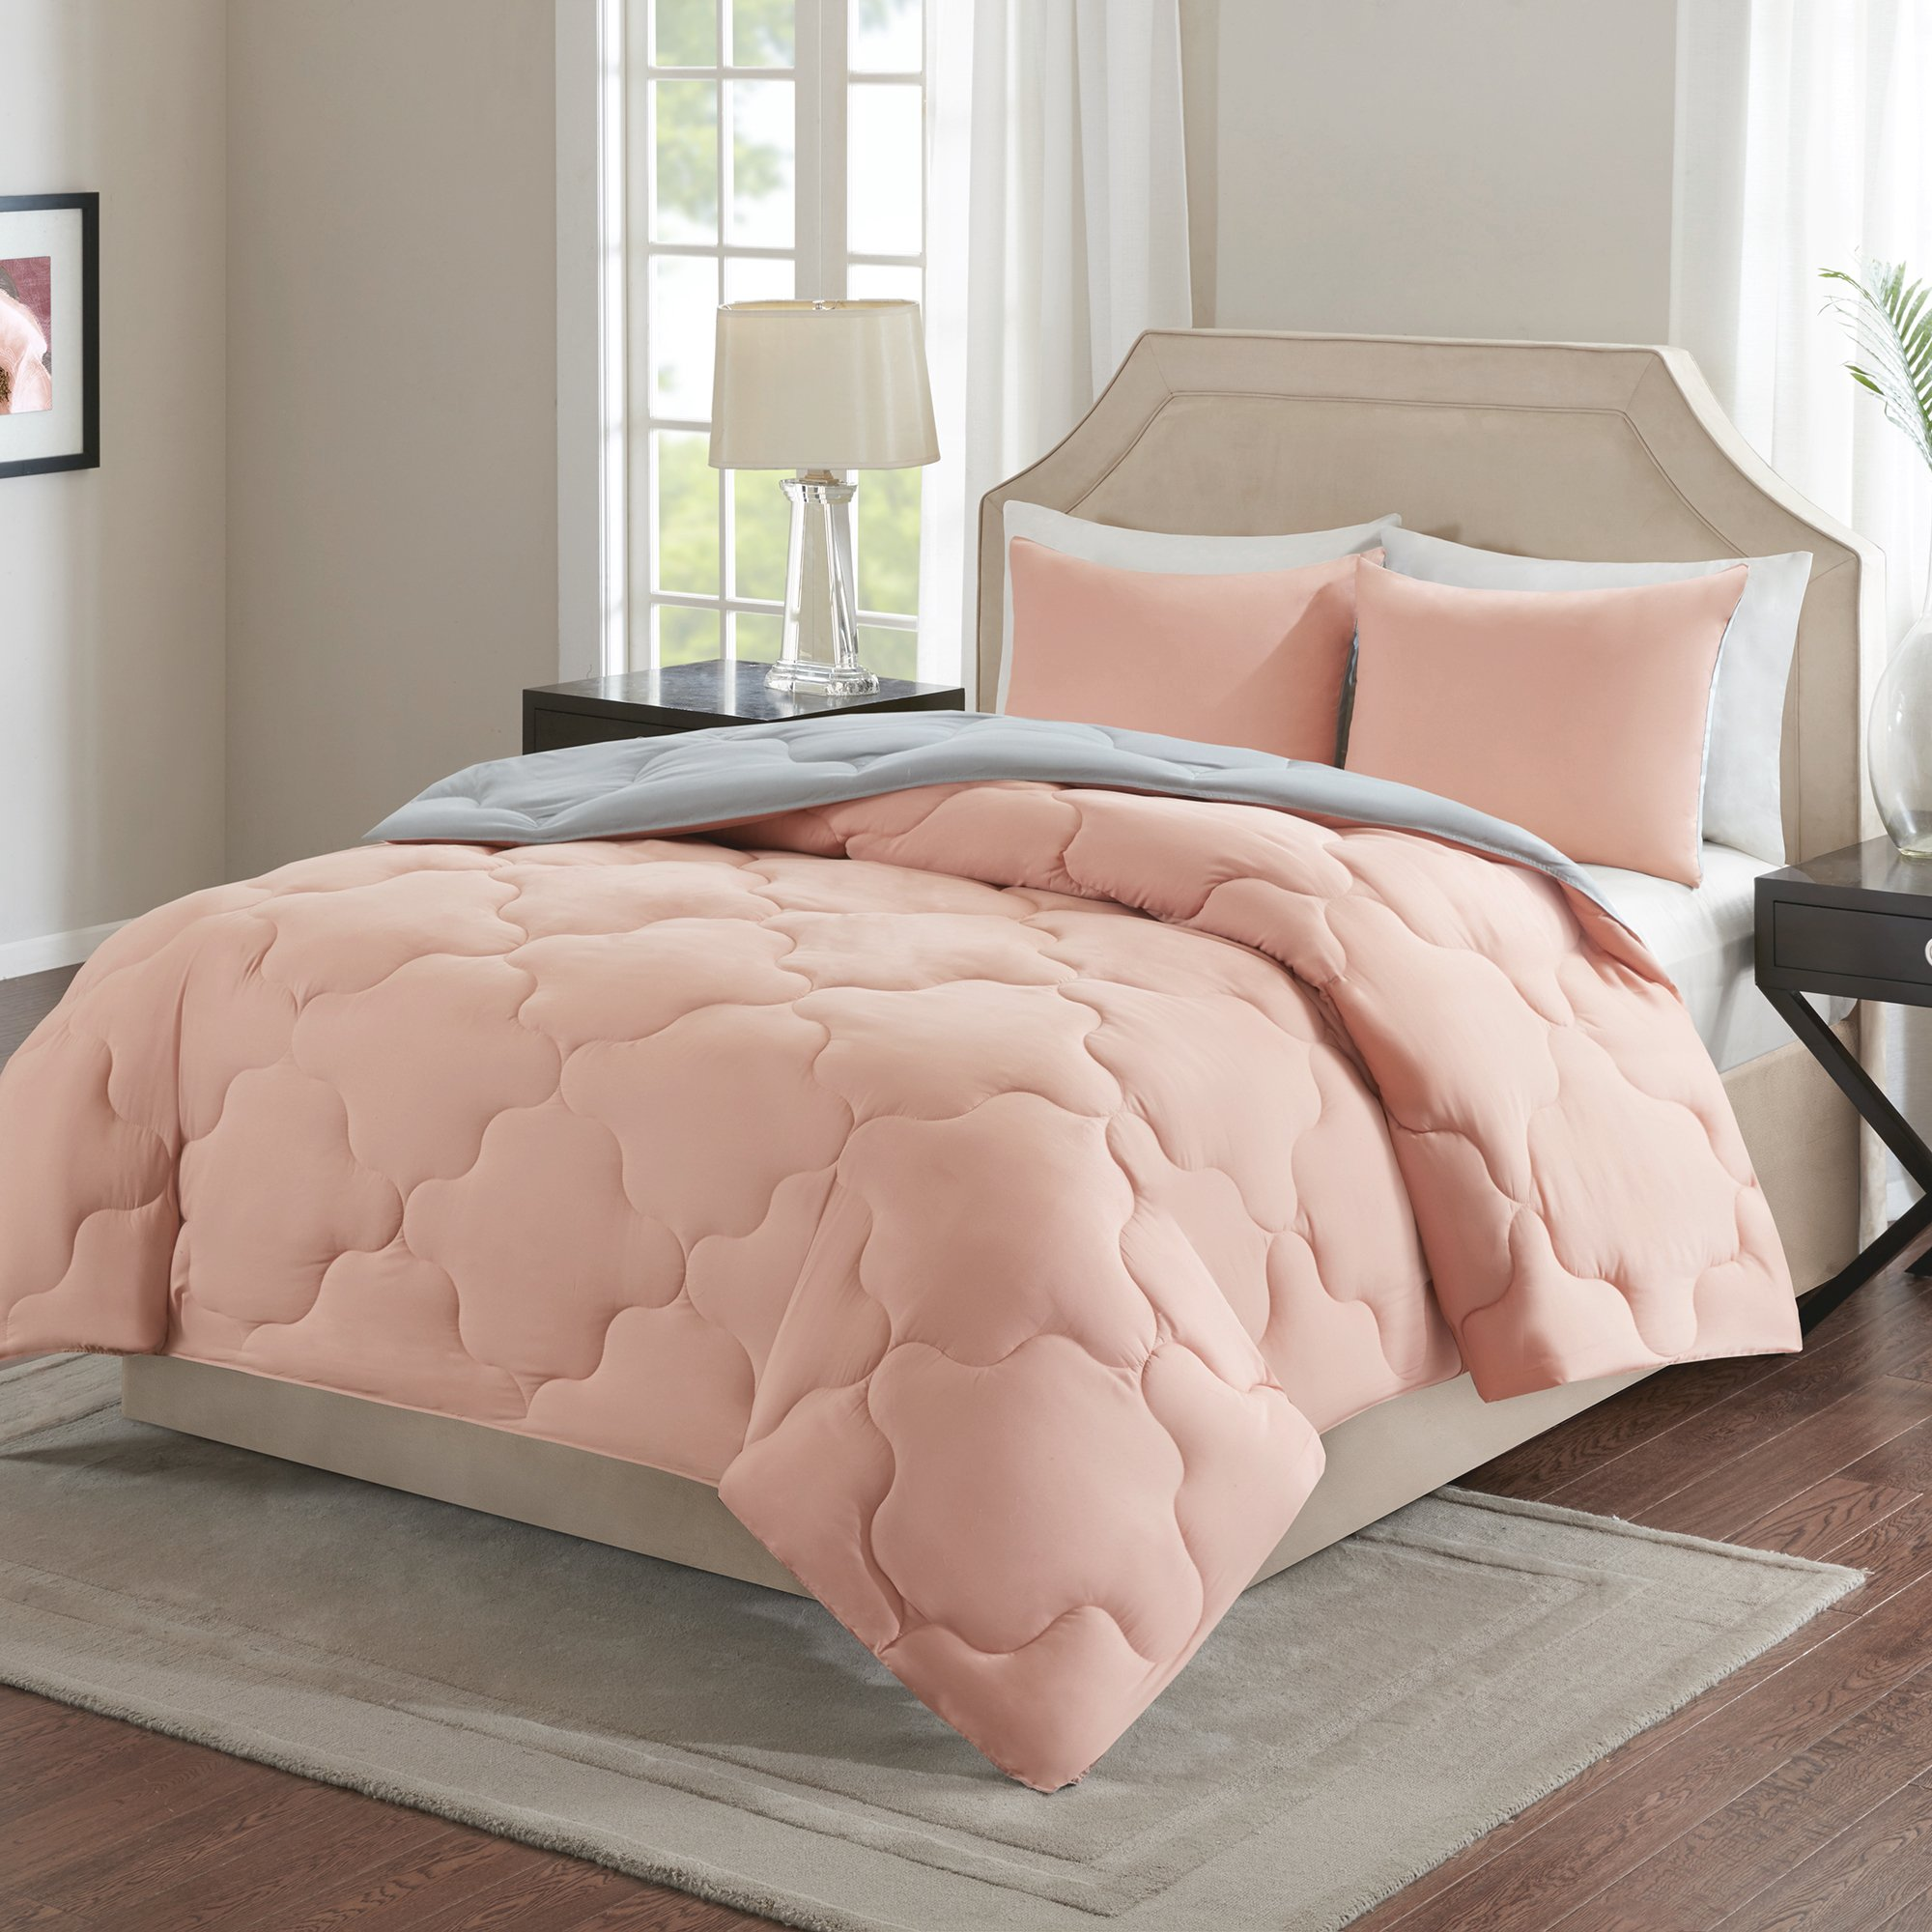 is embossed on classics set product liquidations as overstock free orders over shipping reversible home alternative item vcny down artemis comforter piece